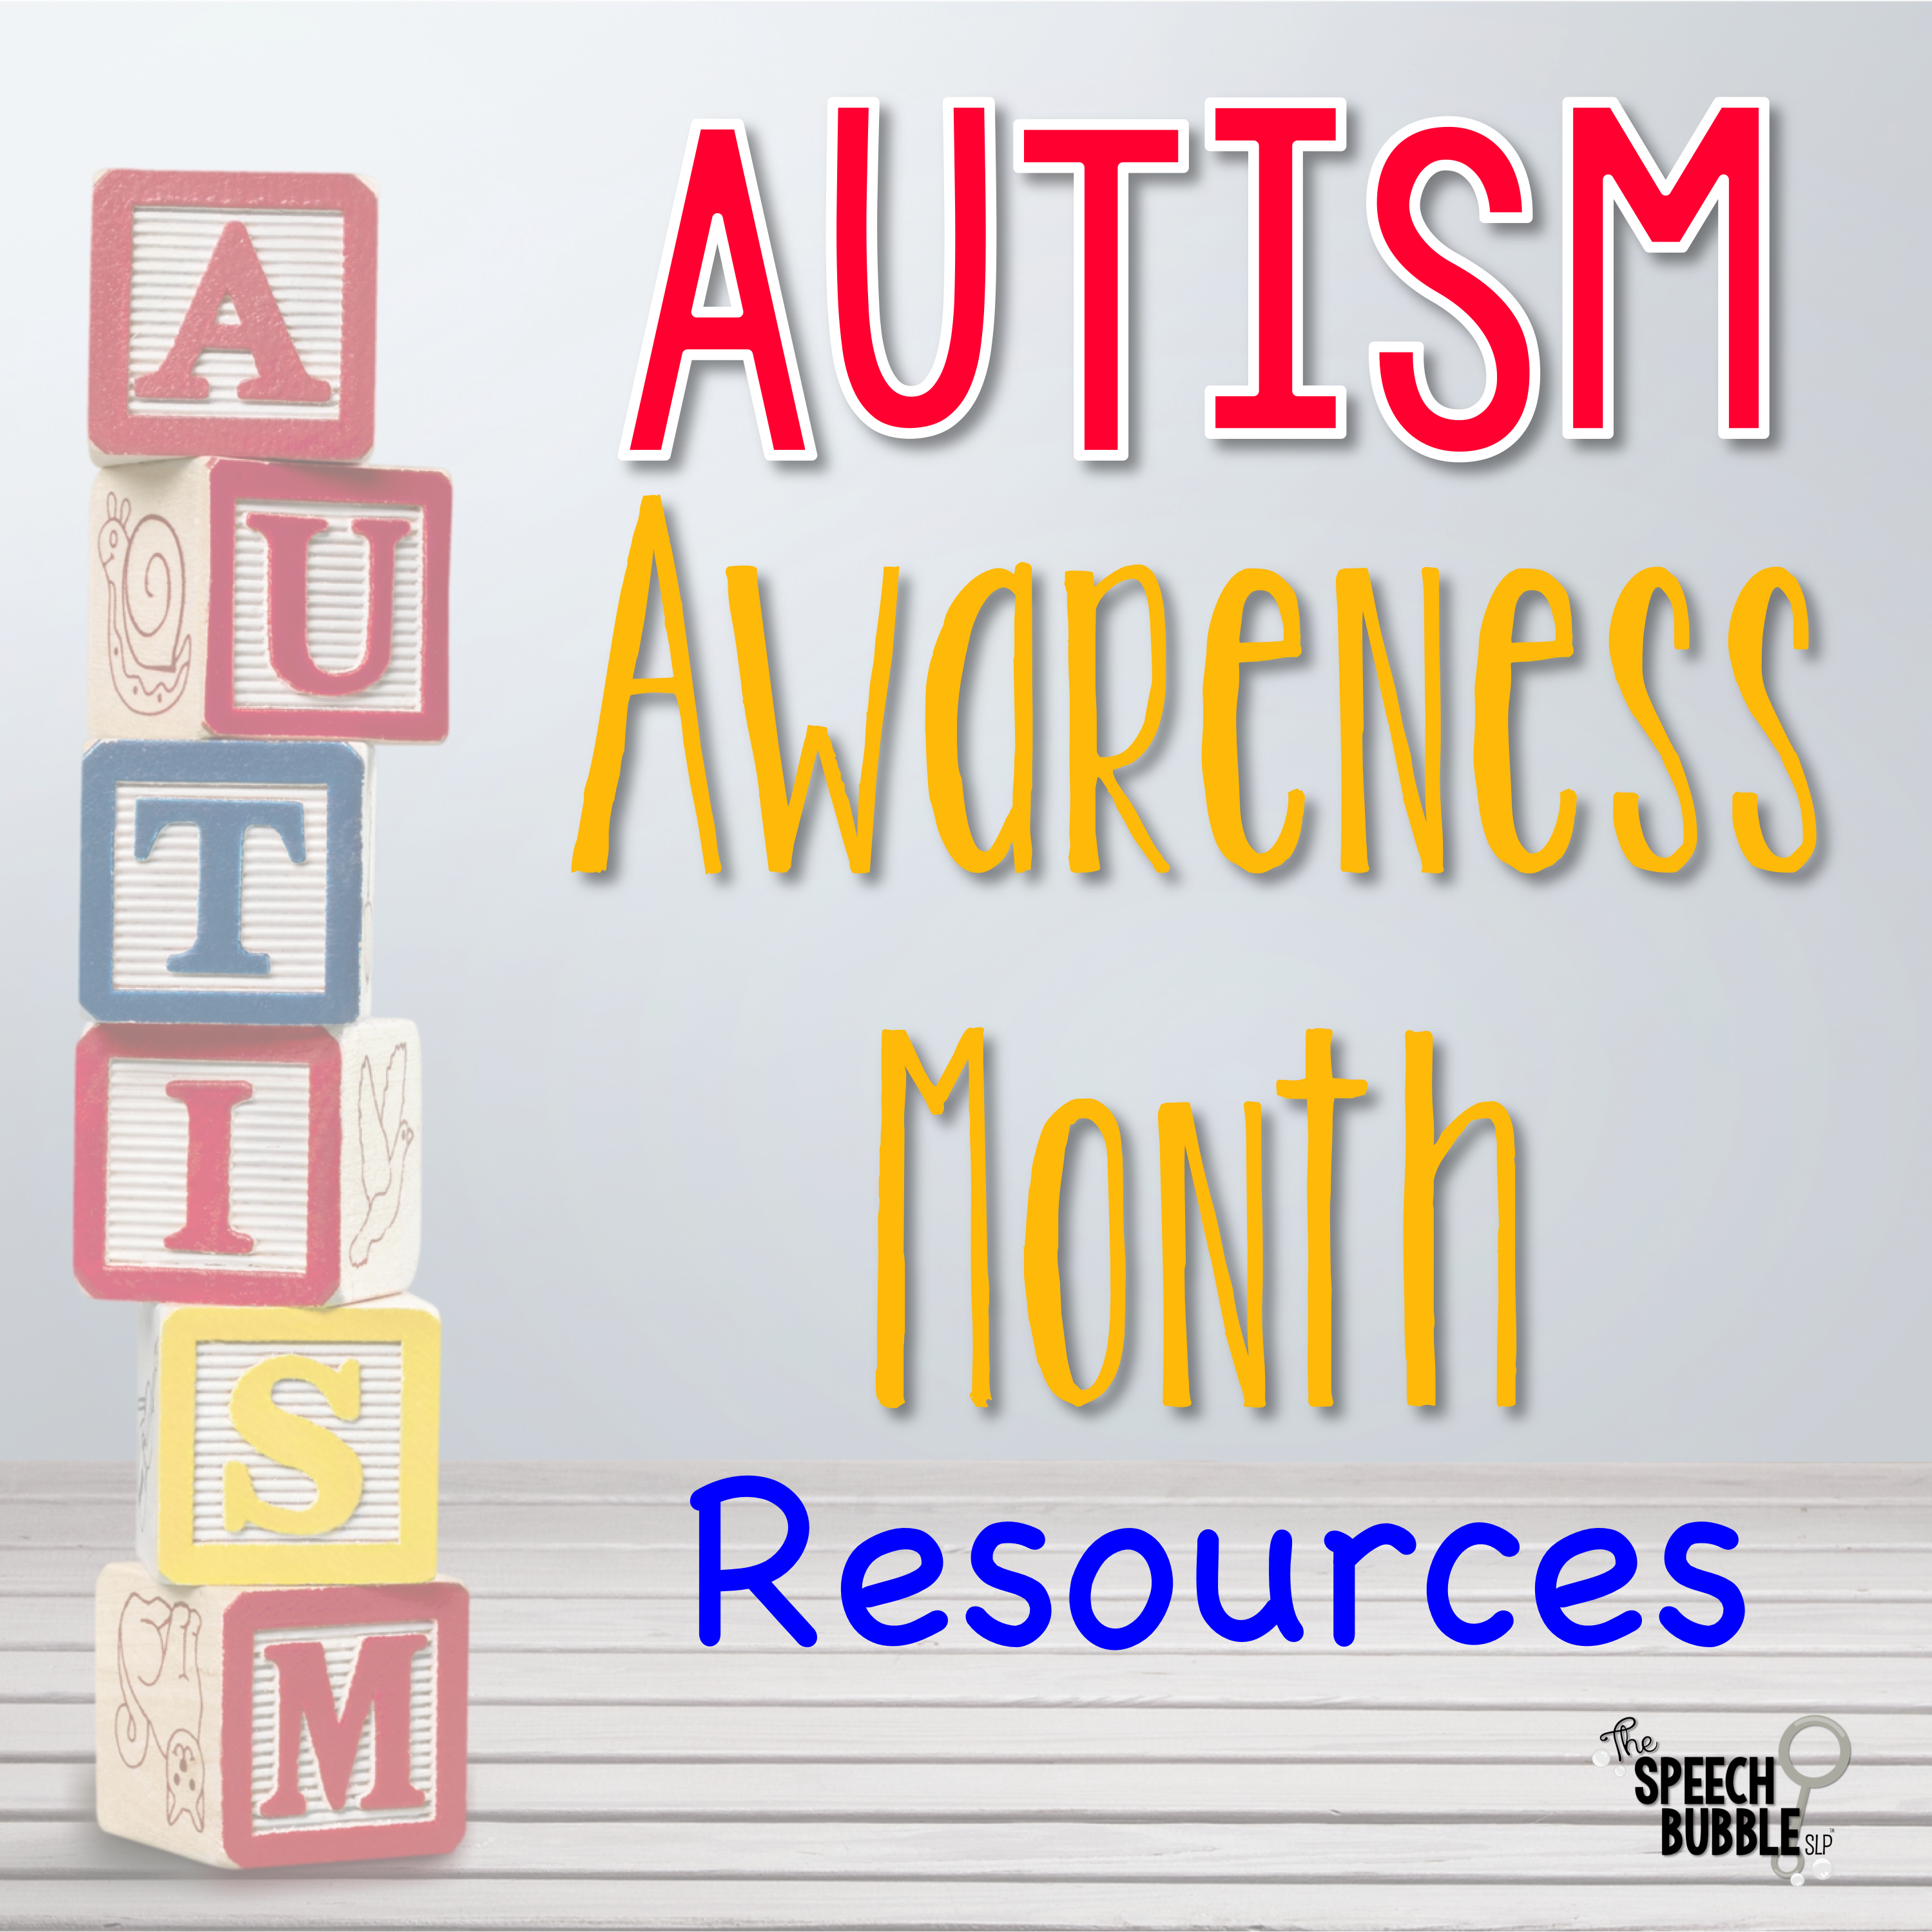 Autism Awareness Month Resources